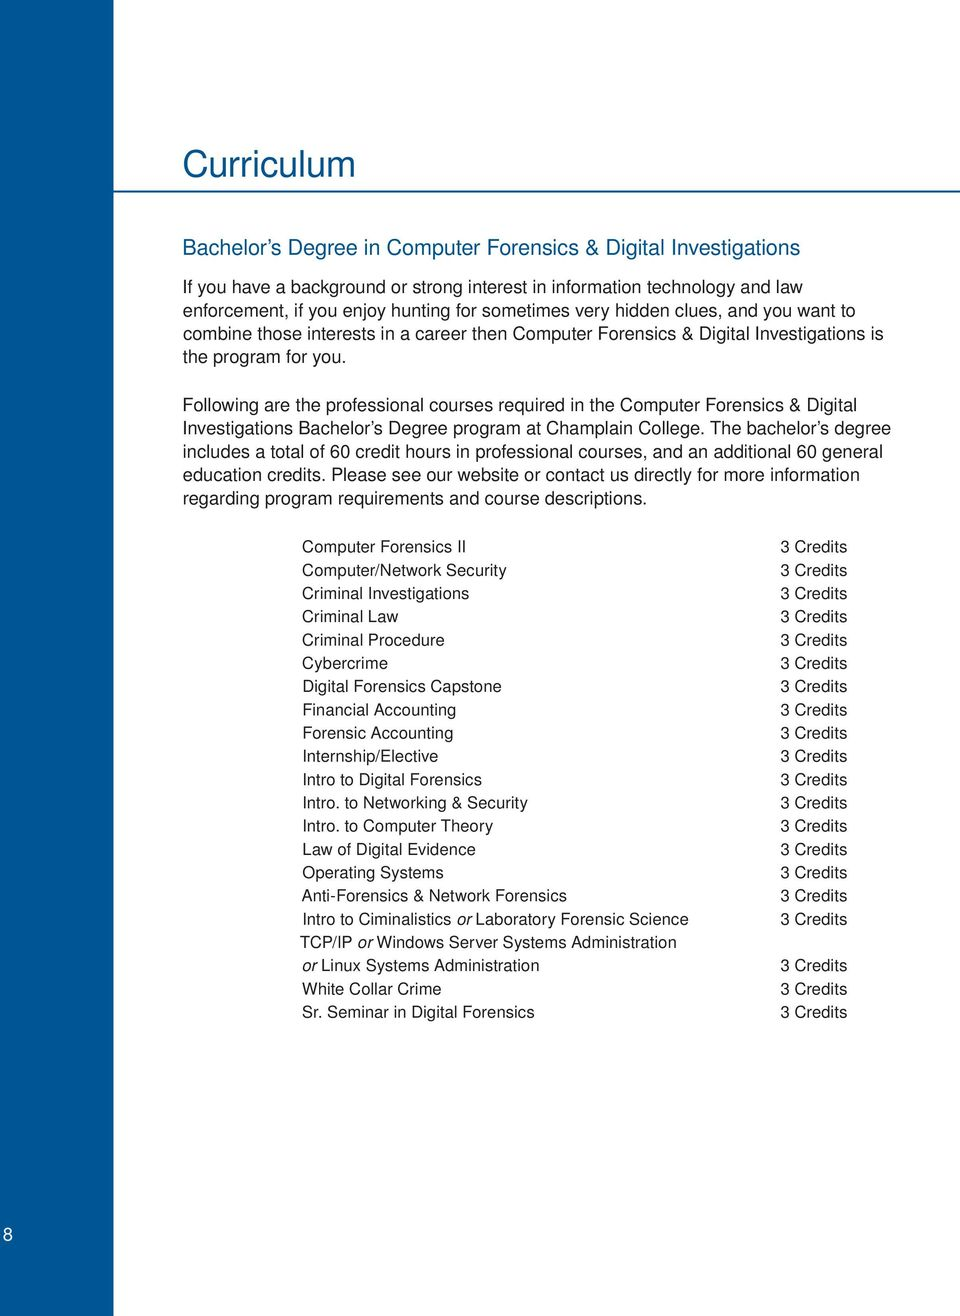 Following are the professional courses required in the Computer Forensics & Digital Investigations Bachelor s Degree program at Champlain College.